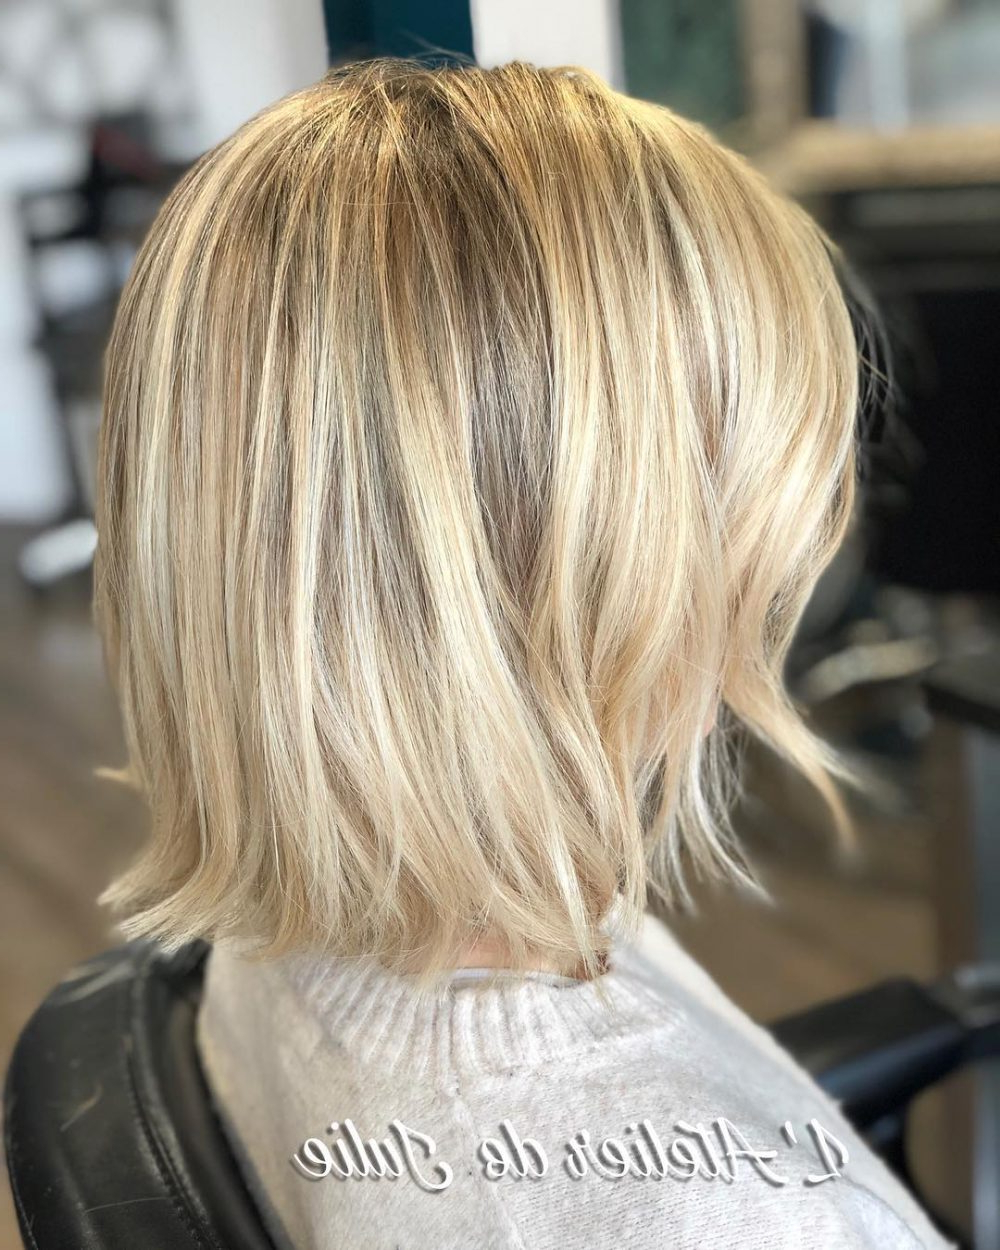 34 Perfect Short Haircuts And Hairstyles For Thin Hair (2018) Intended For Feathered Pixie Hairstyles For Thin Hair (View 6 of 20)